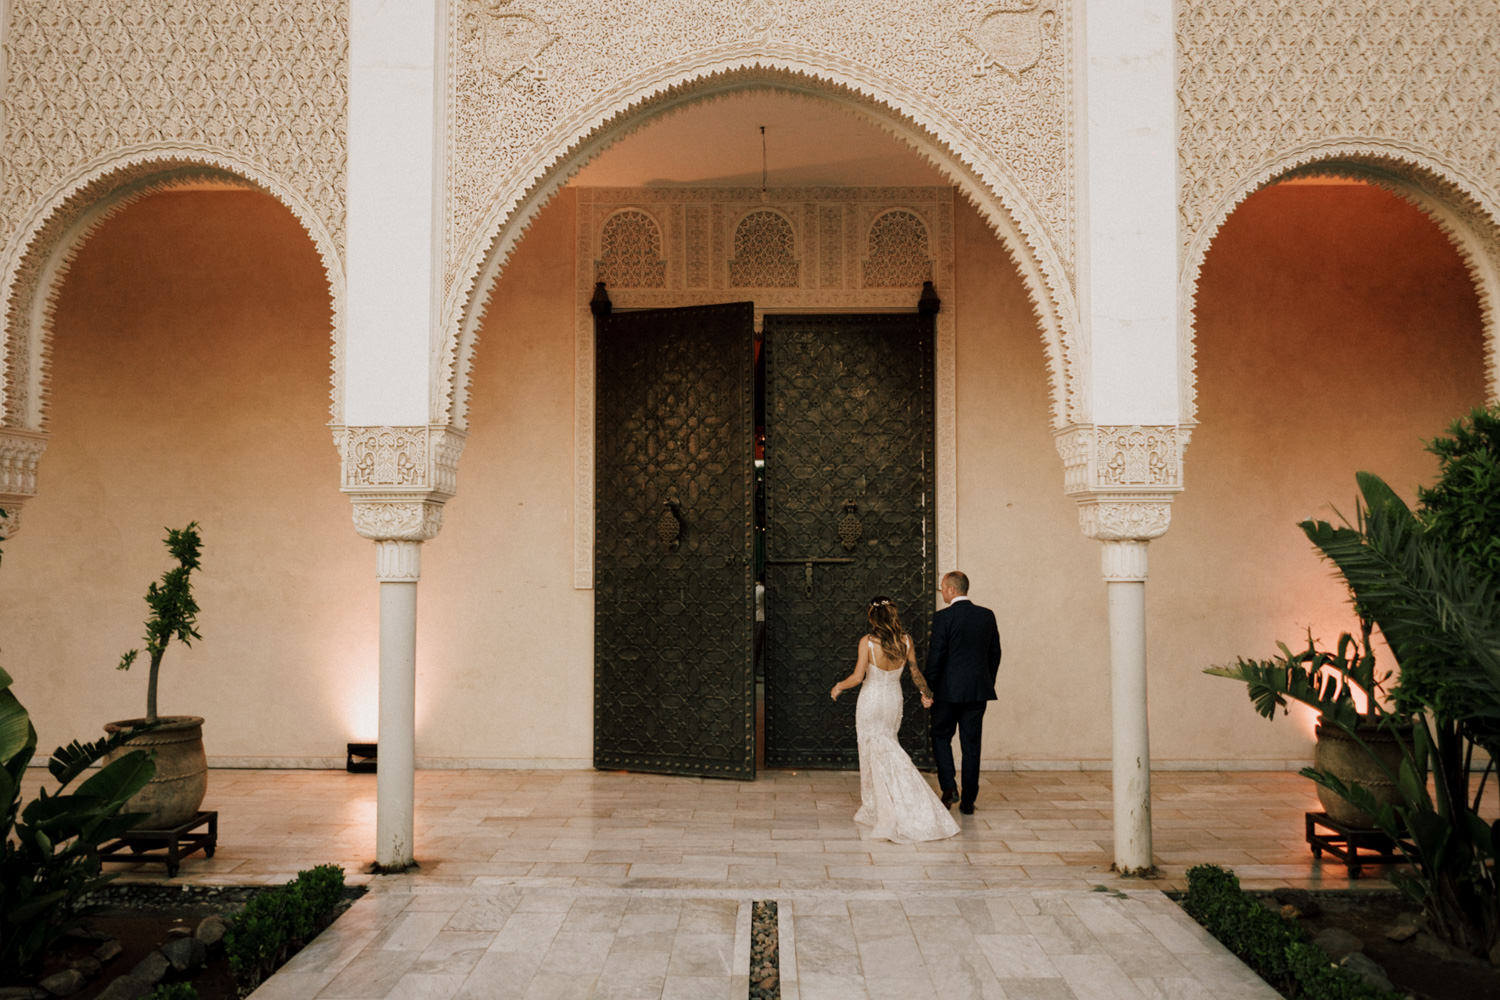 491-marrakech-wedding.jpg